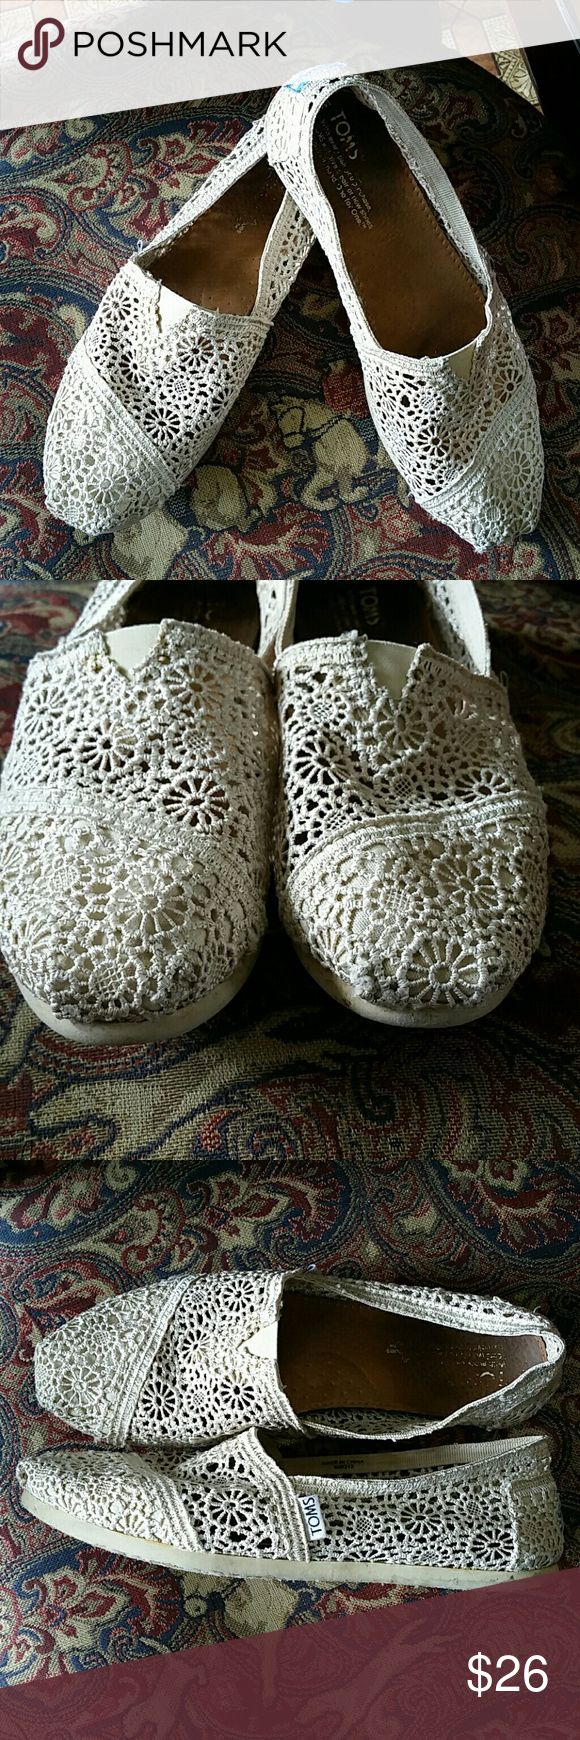 🌻Tom's crochet flat's🌻 These are a reposh. Size 8.5, cream colored. Preloved  condition but I had to clean them up and they're ready to wear now. Please inspect all pics and ask questions before purchase. Price is pretty firm, I need to make some back for what I paid, as I was not able to wear these at all. TOMS Shoes Flats & Loafers